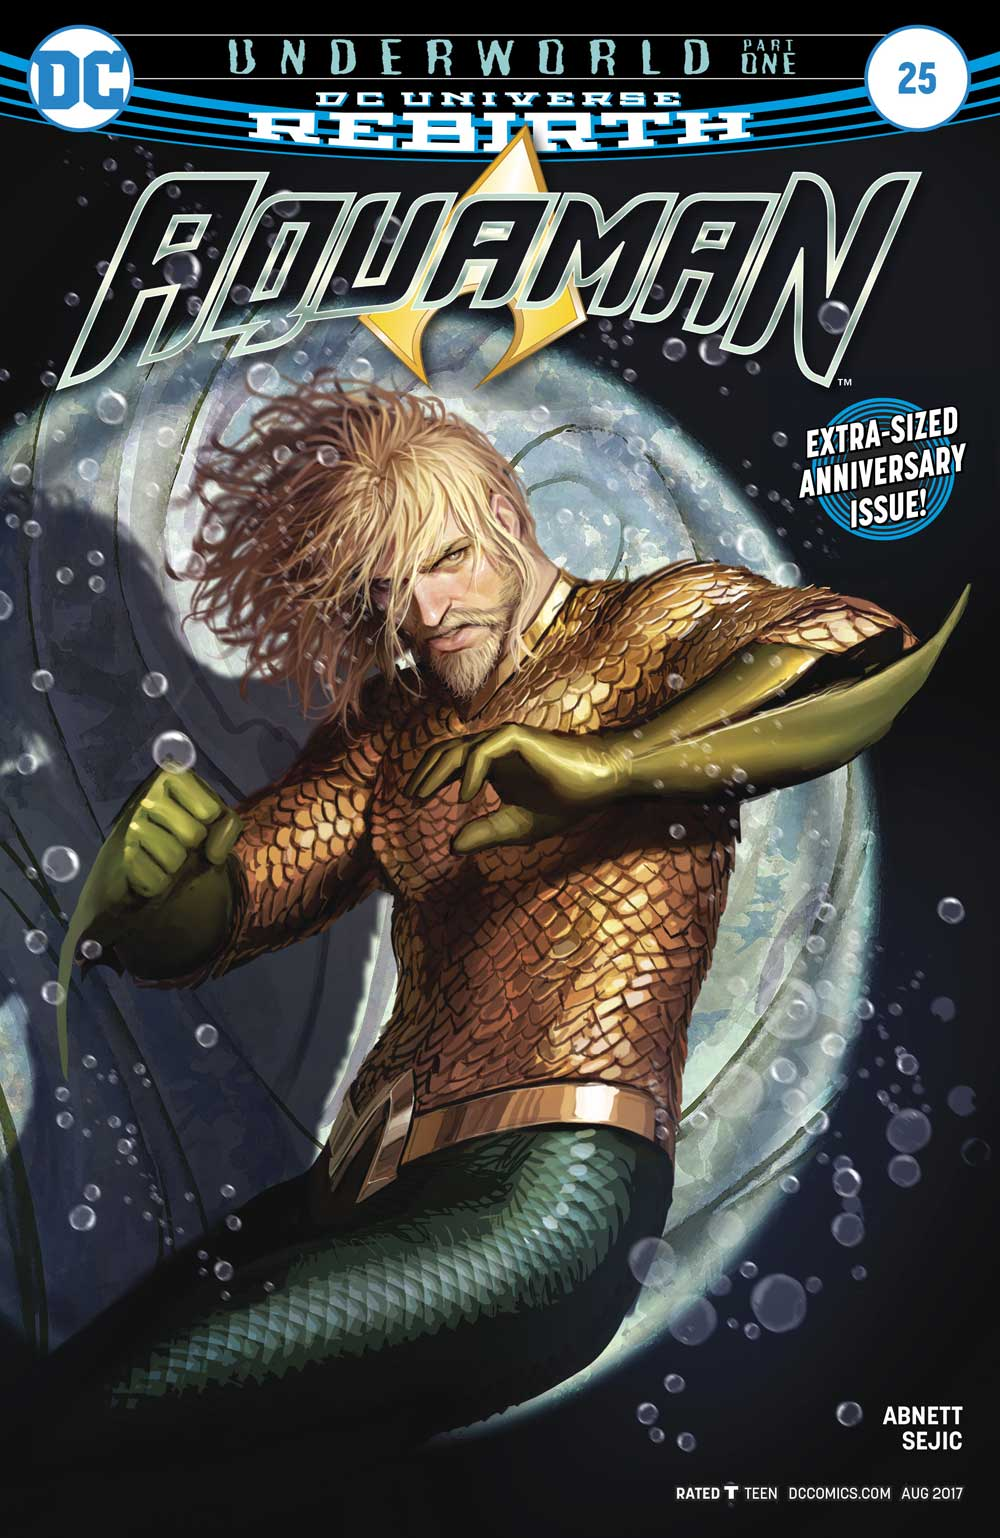 Aquaman #25 cover by Stjepan Sejic